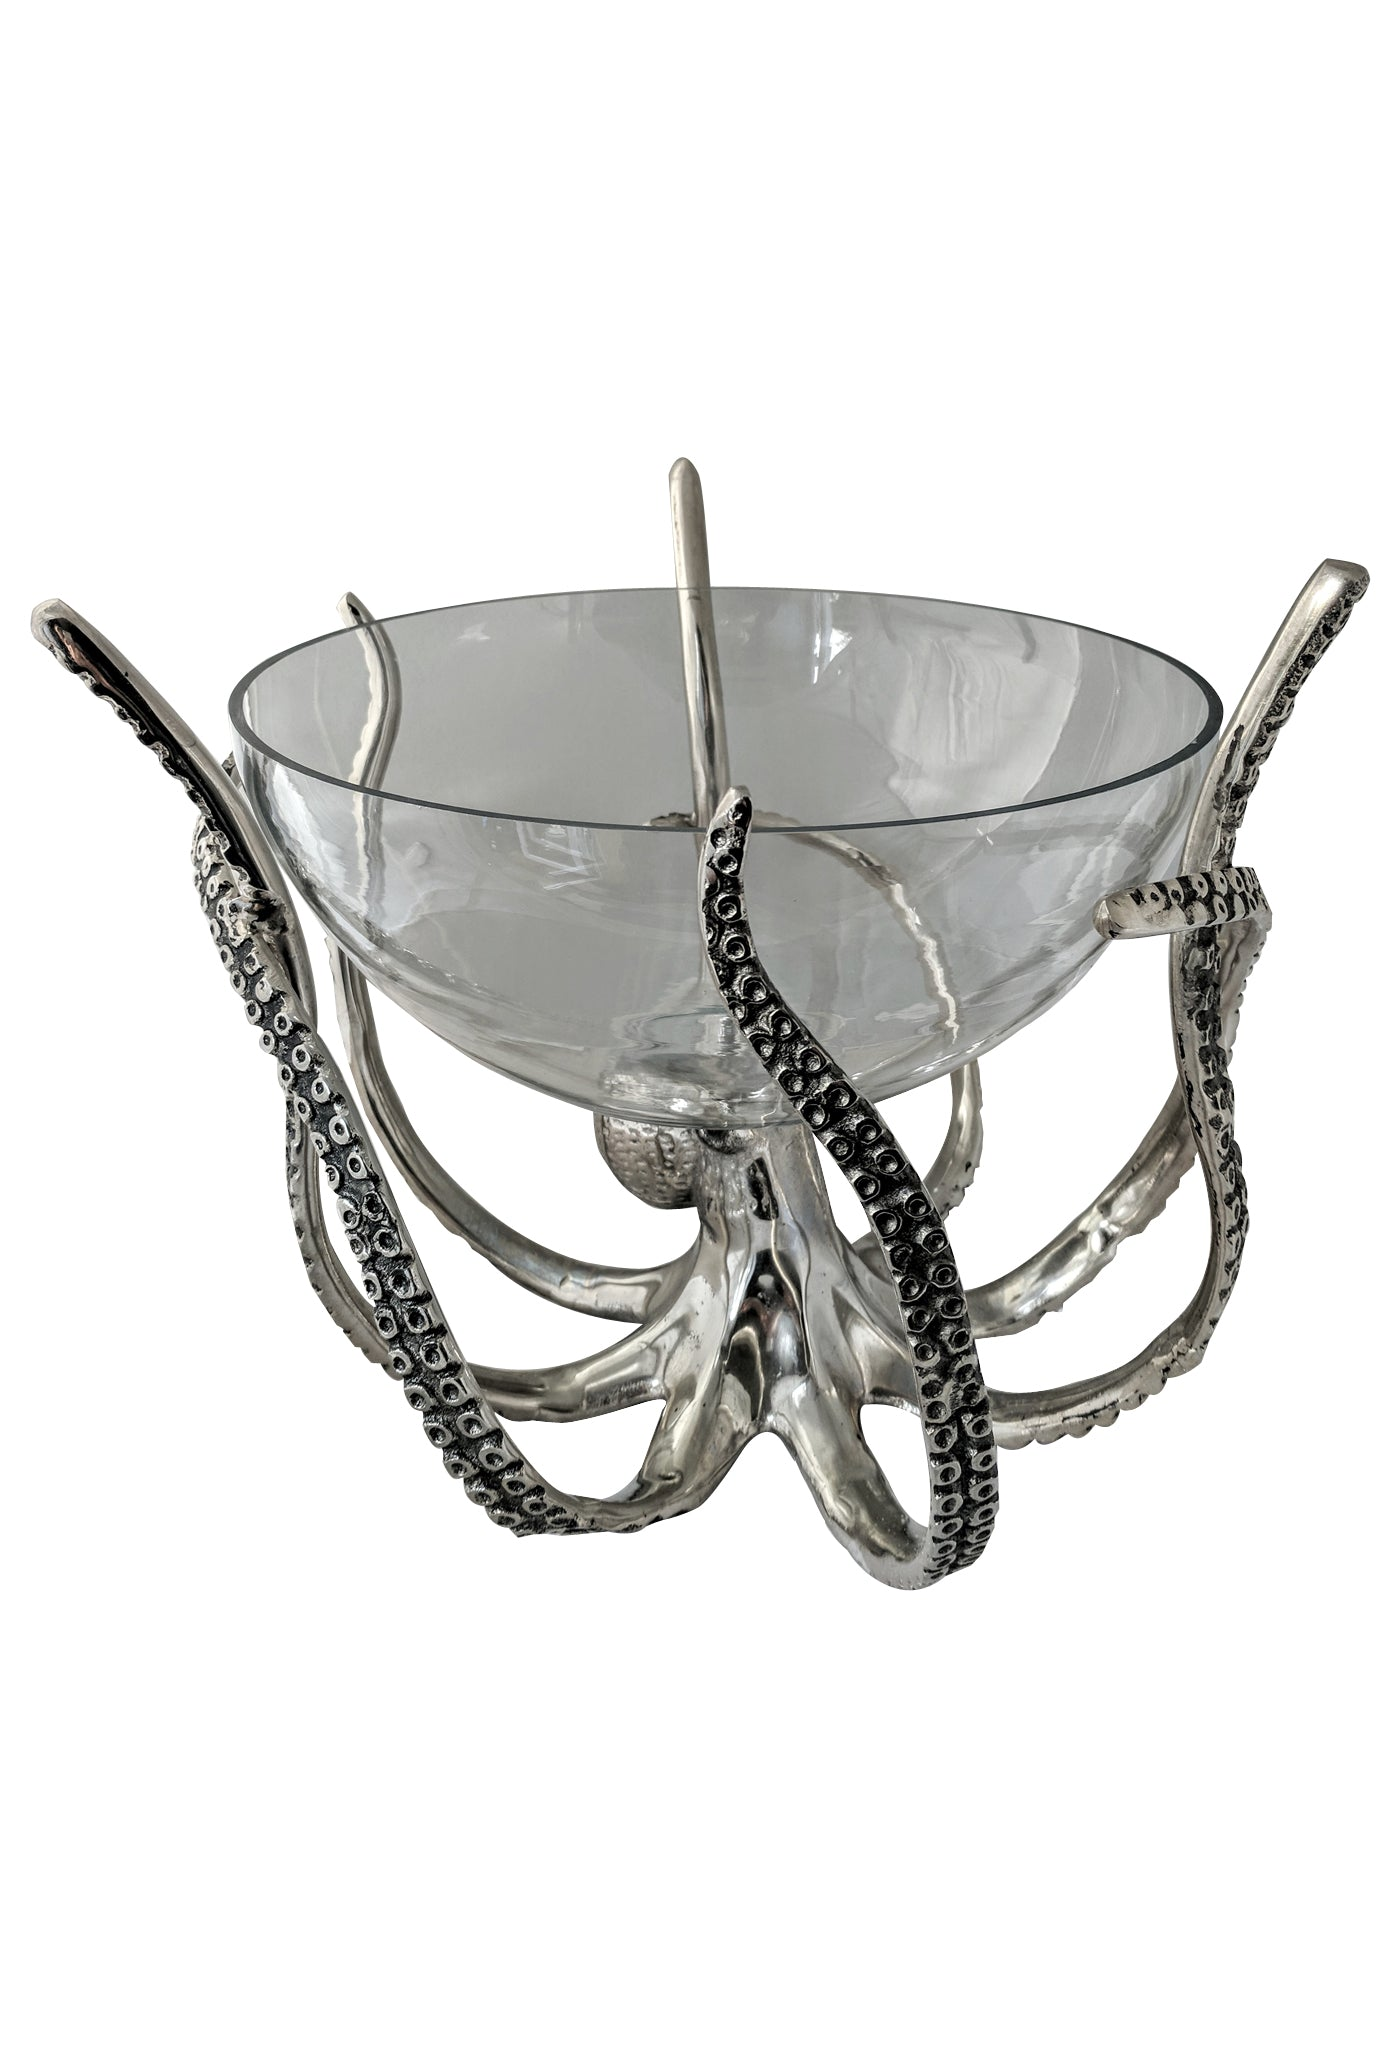 Octopus stand with glass bowl